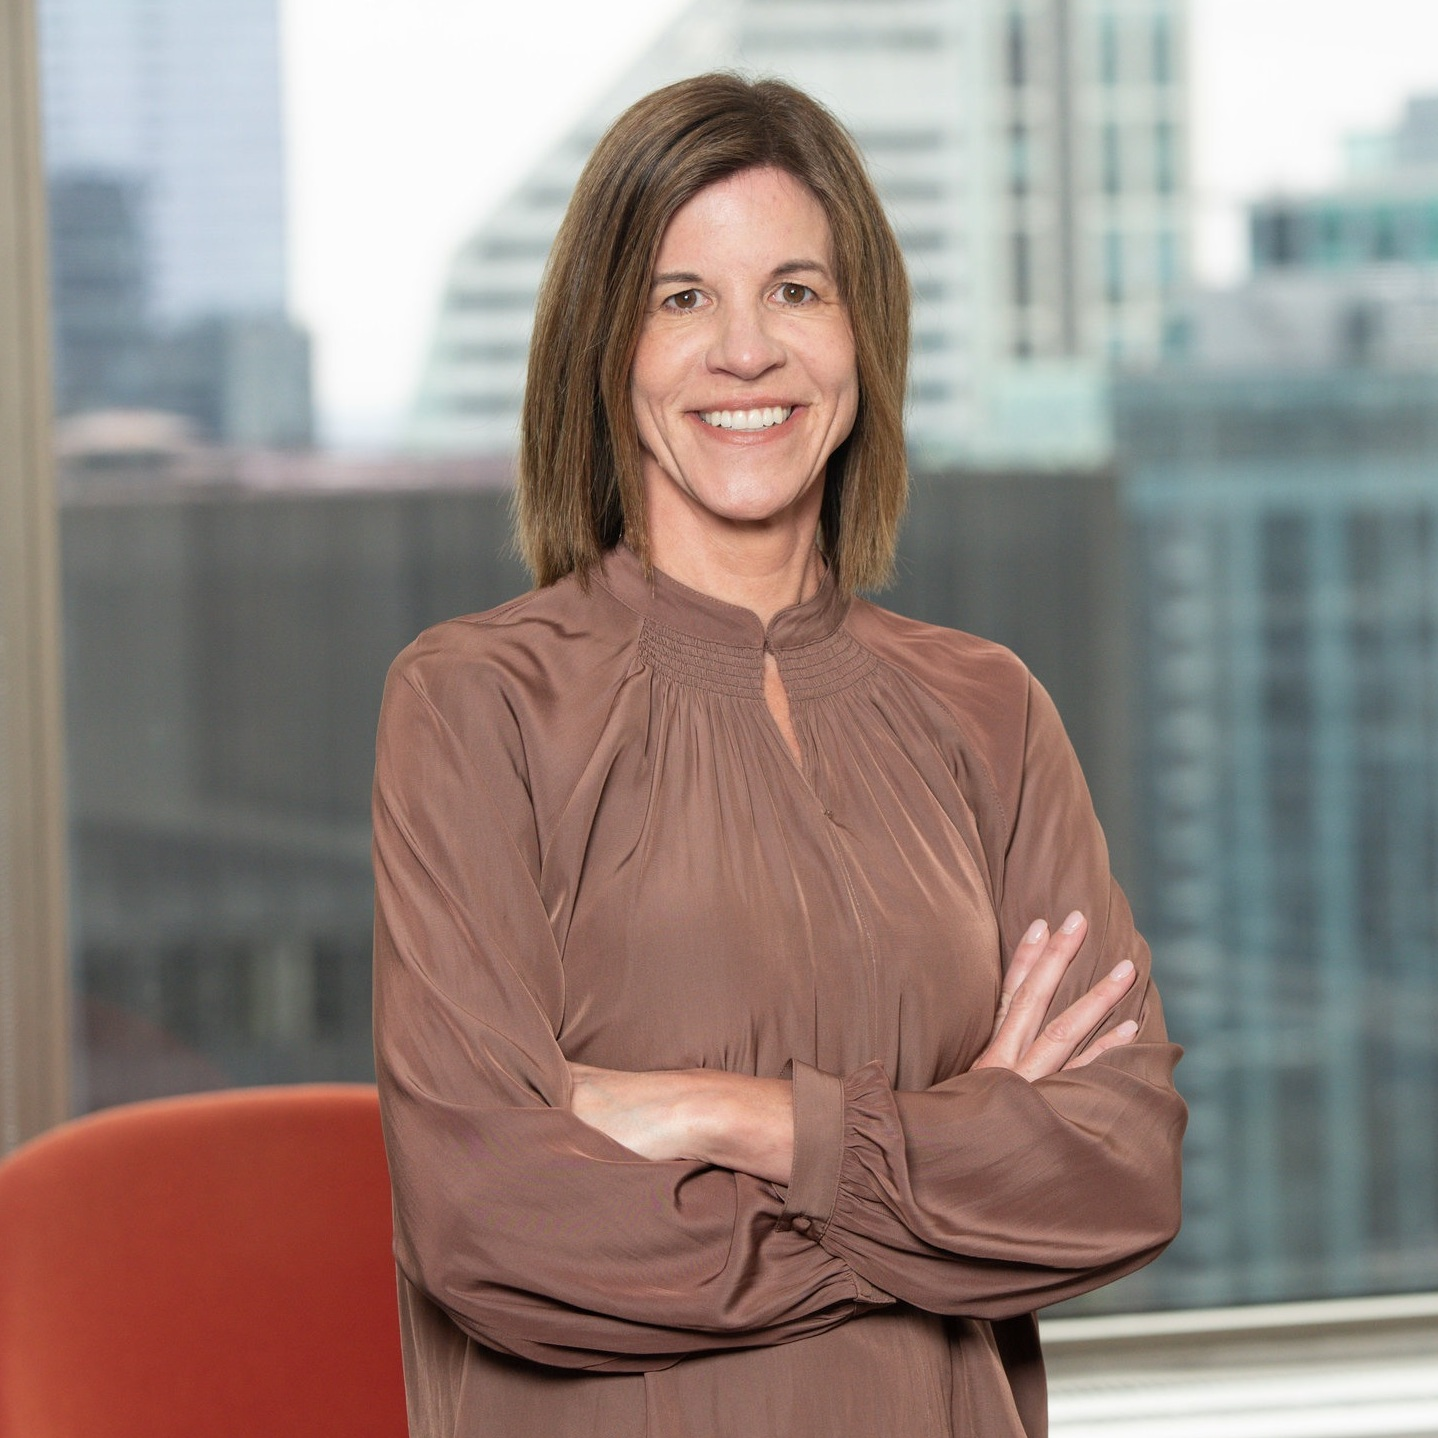 RENEE BERGHOFF  Director of Human Resources, Sterling Partners